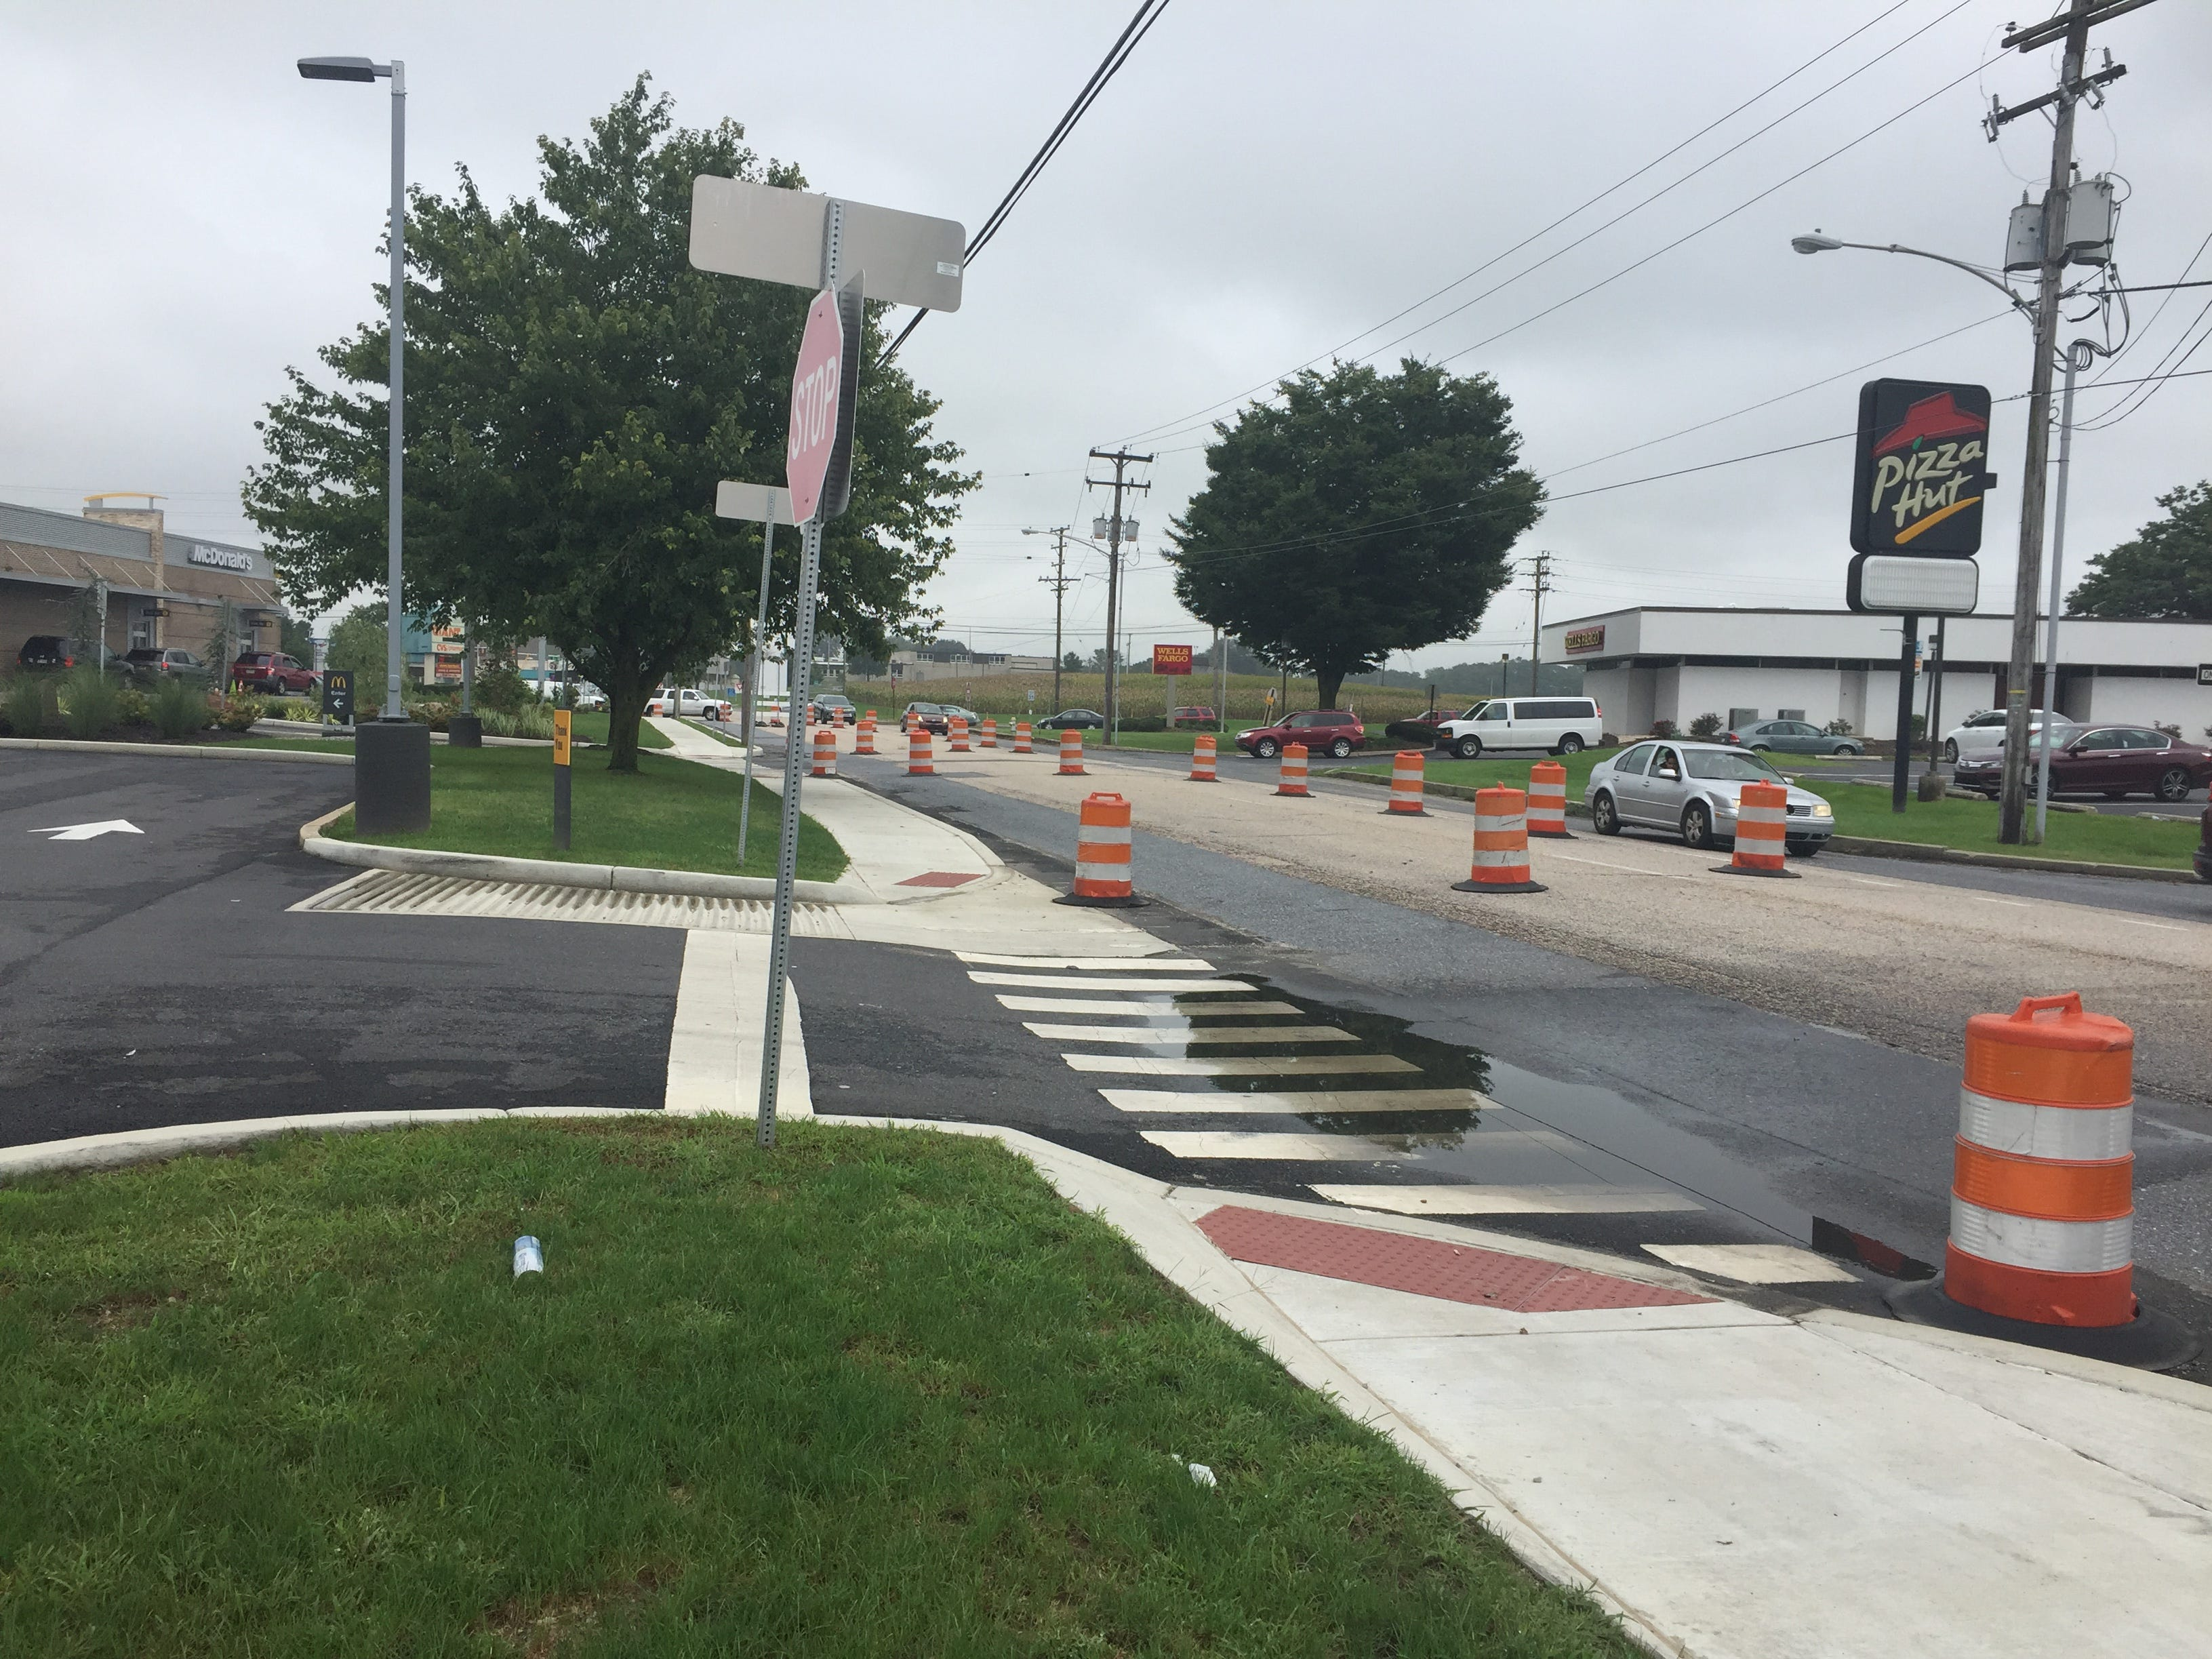 Road construction continues on E. Cumberland Street in Lebanon on Wednesday, Sept. 12, 2018. PennDOT hopes to reopen both lanes of Cumberland Street by the end of the year, but construction still won't be complete.